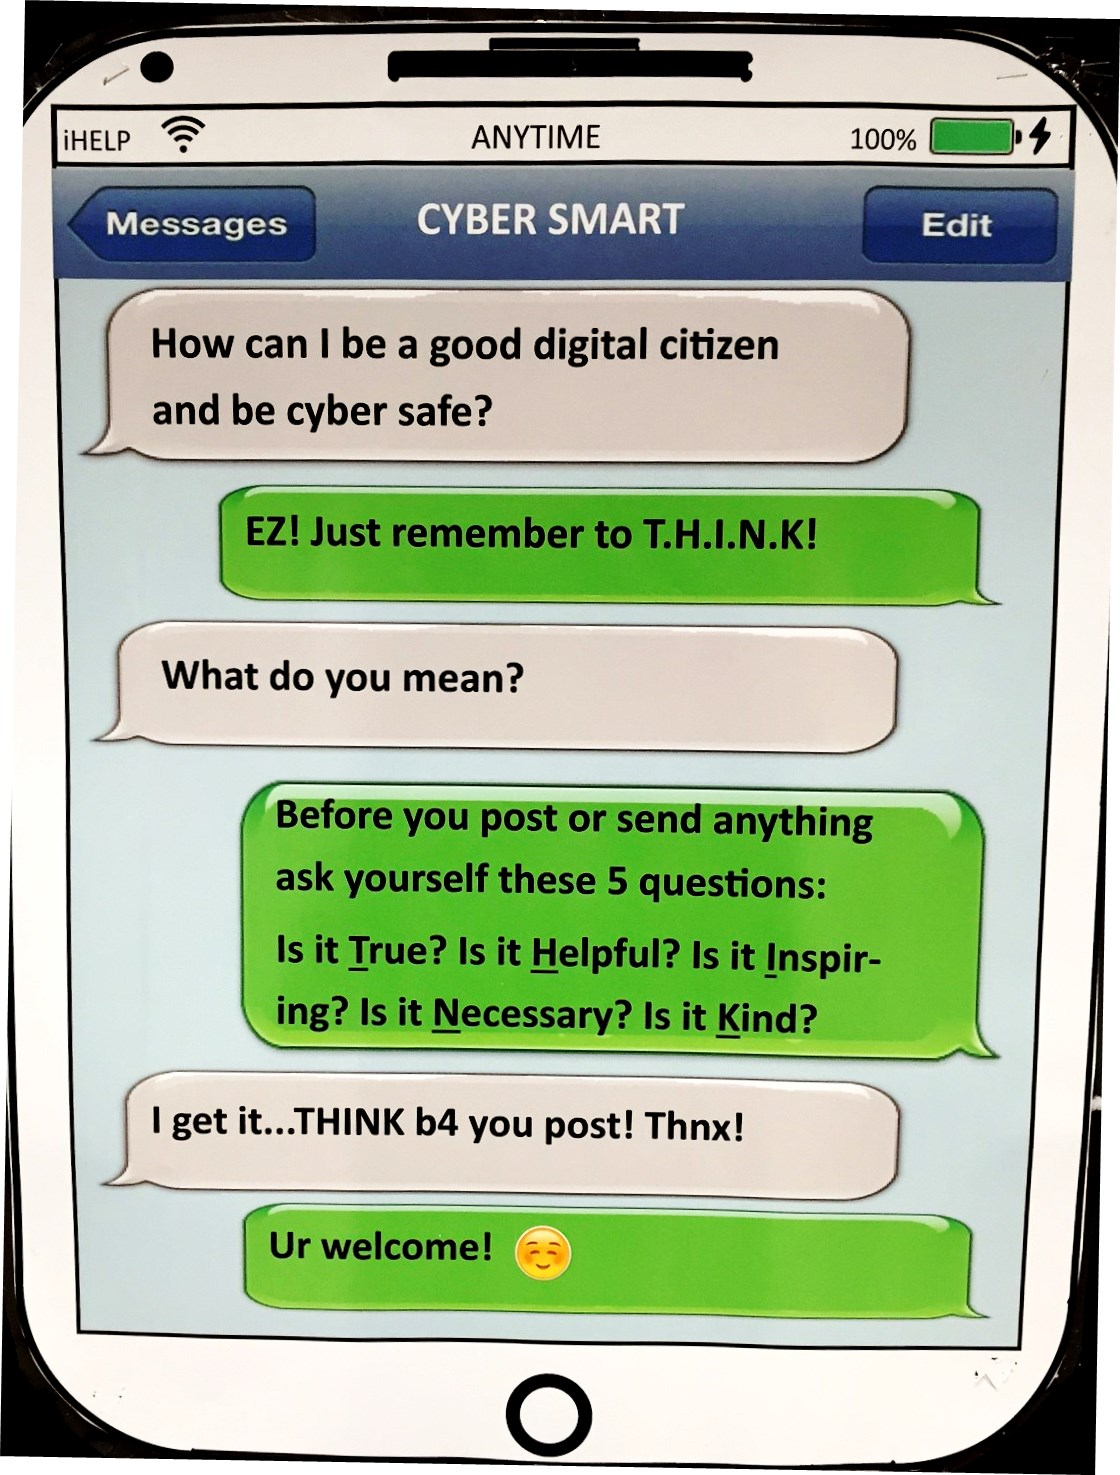 Cyber Smart Texting, How can I be a good digital citizen and be cyber safe. EZ Just remember to THINK. What do yo umean? Before you post or send anything ask your self these 5 questions. Is it true? is it helpful? Is is inspiring? Is is necessary? Is it kind? I get it...THINK b4 your post! Thnx! Ur welcome!